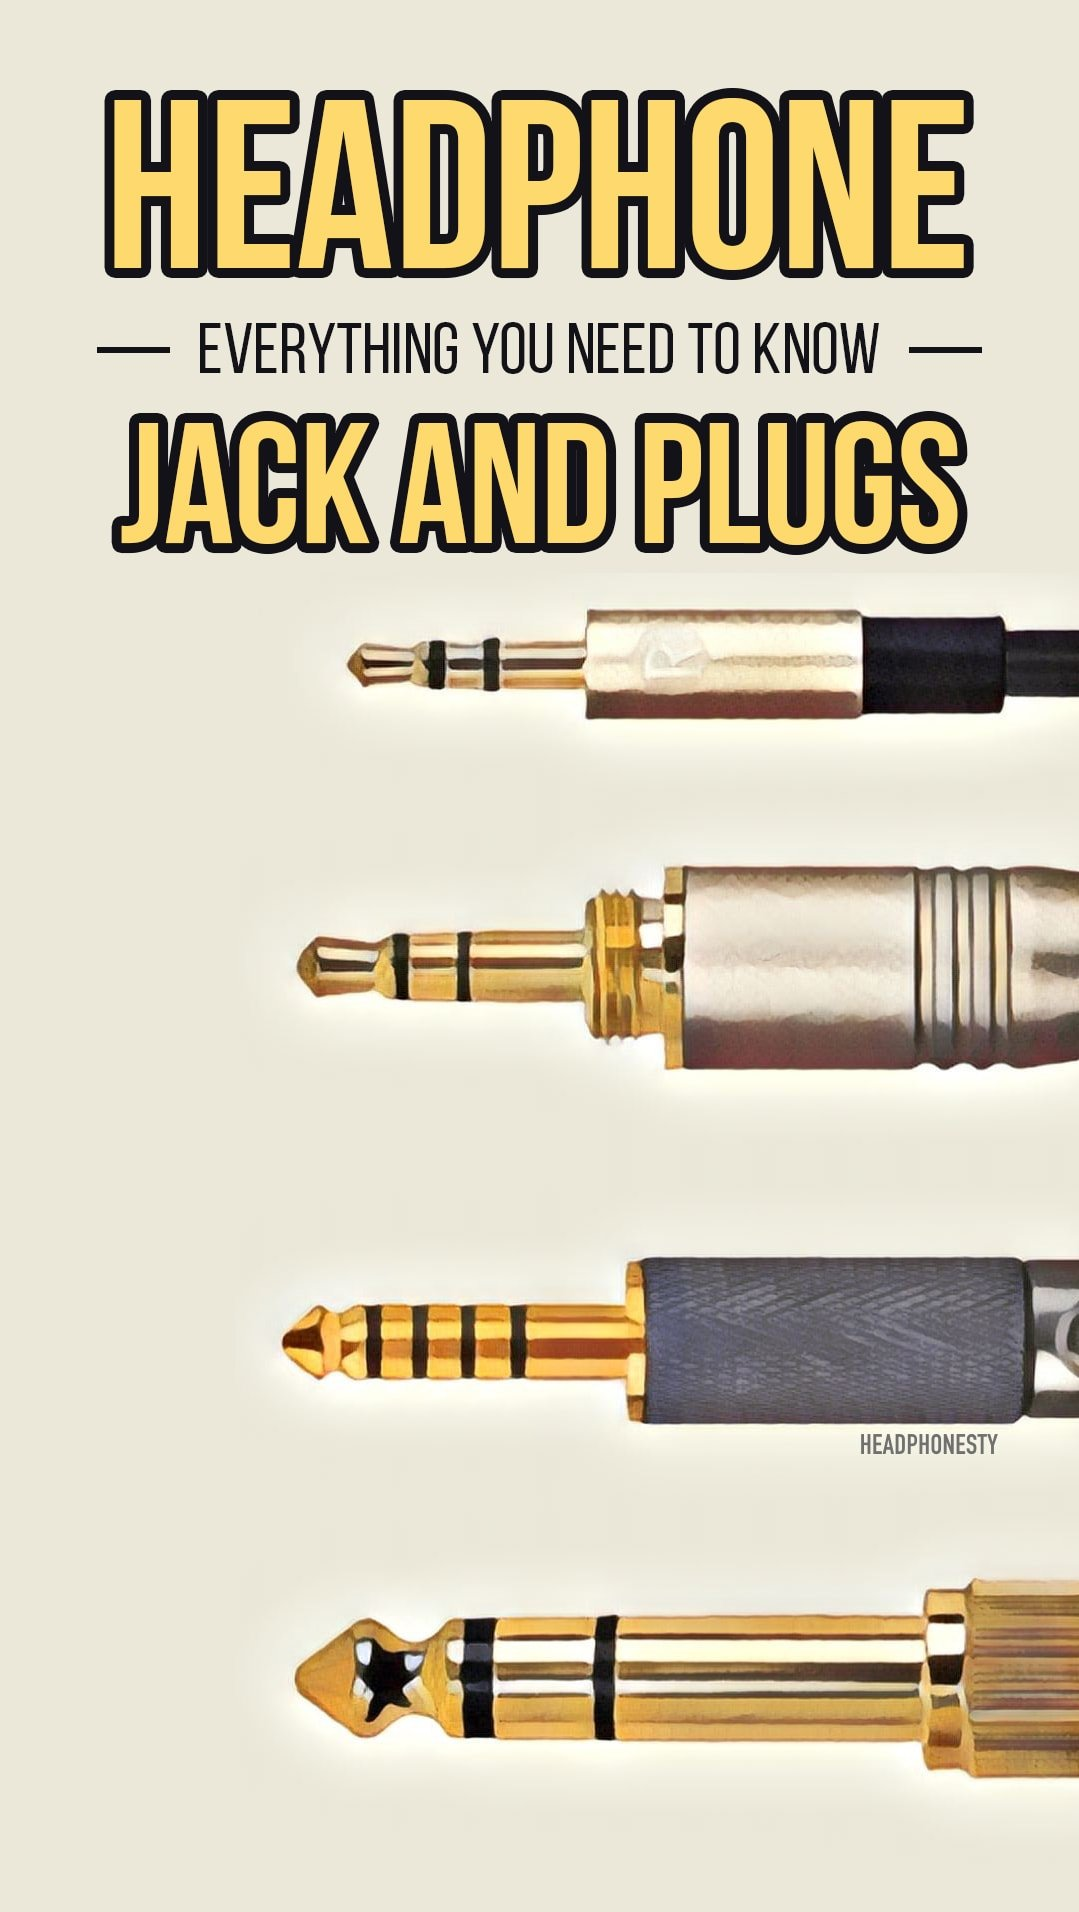 Headphone Jack and Plugs: Everything You Need to Know